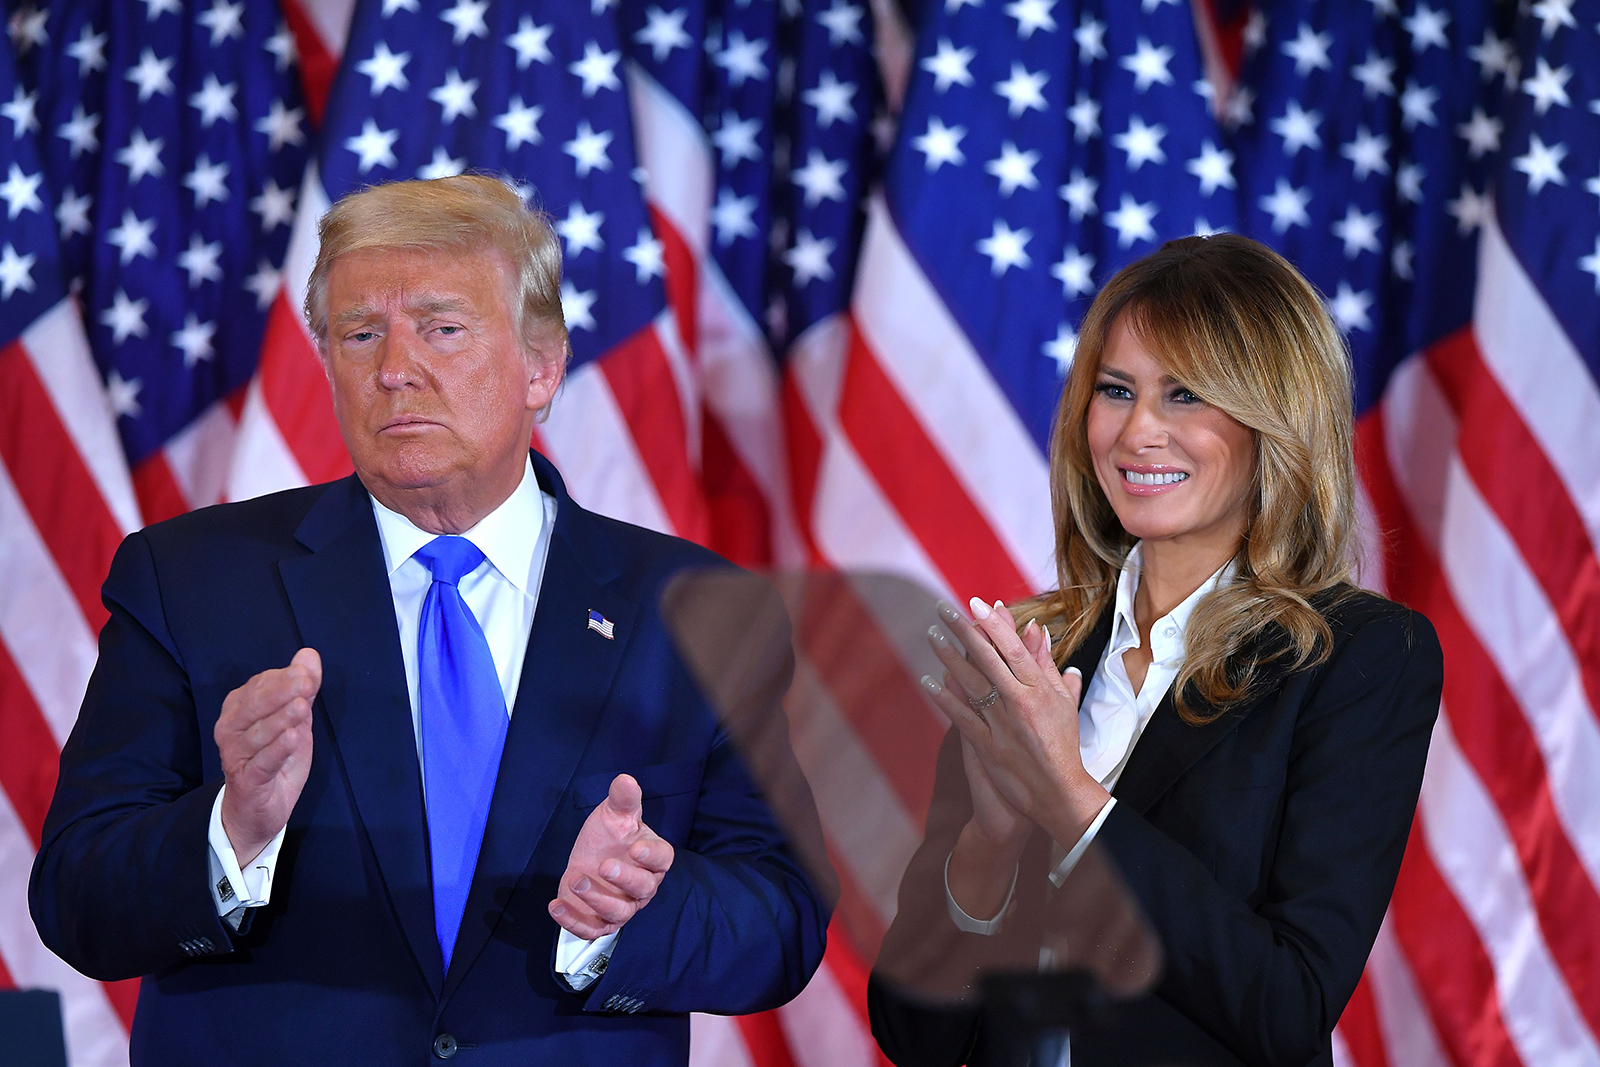 President Donald Trump clapped his hands with First Lady Melania Trump after speaking on election night in the East Room of the White House in Washington, early morning on November 4.